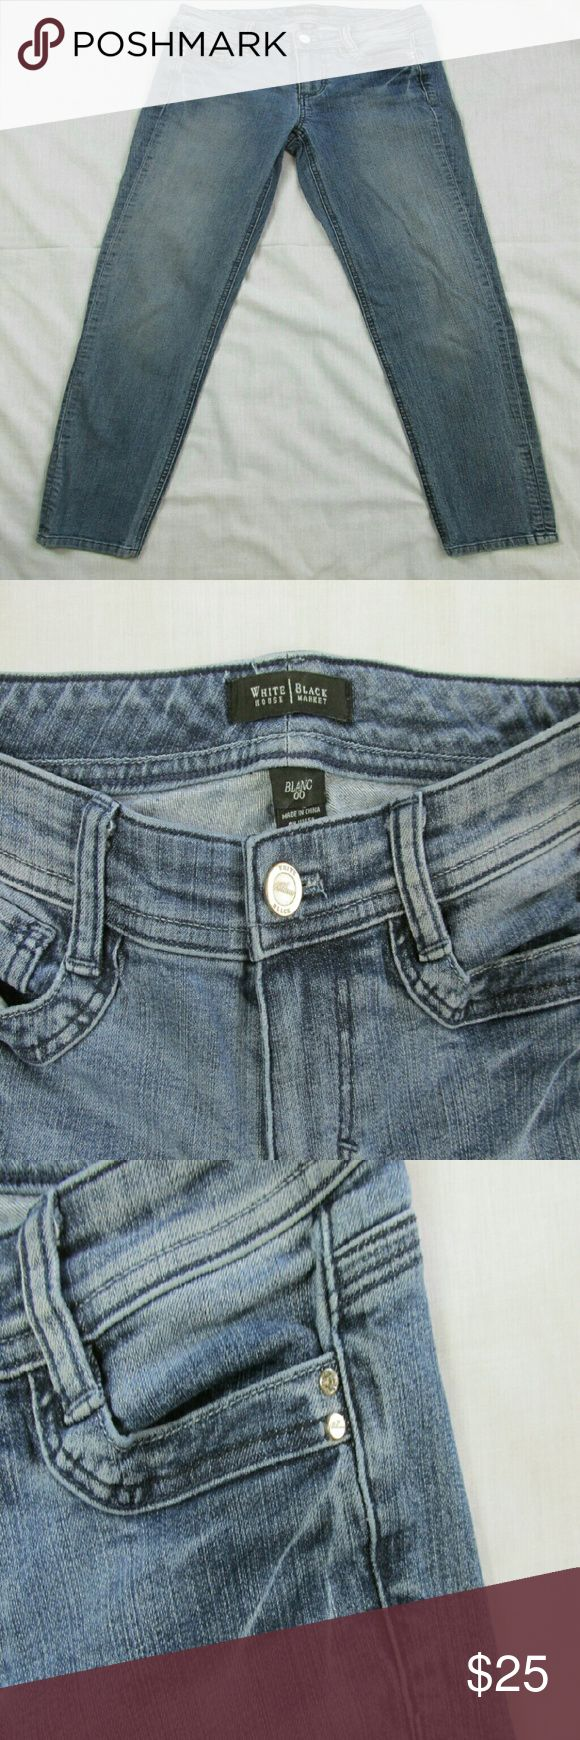 White House Black Market Jeans Size 00 WHBM Blanc Jeans Size 00.  Has rhinestone rivets.  Good condition with no flaws. Waist: 26 in. Inseam: 28 1/2 in. Front Rise: 7 1/2 in. Back Rise: 9 1/2 in. Hips: 33 in. Thighs: 17 in. Leg Opening: 11 in. White House Black Market Jeans Skinny